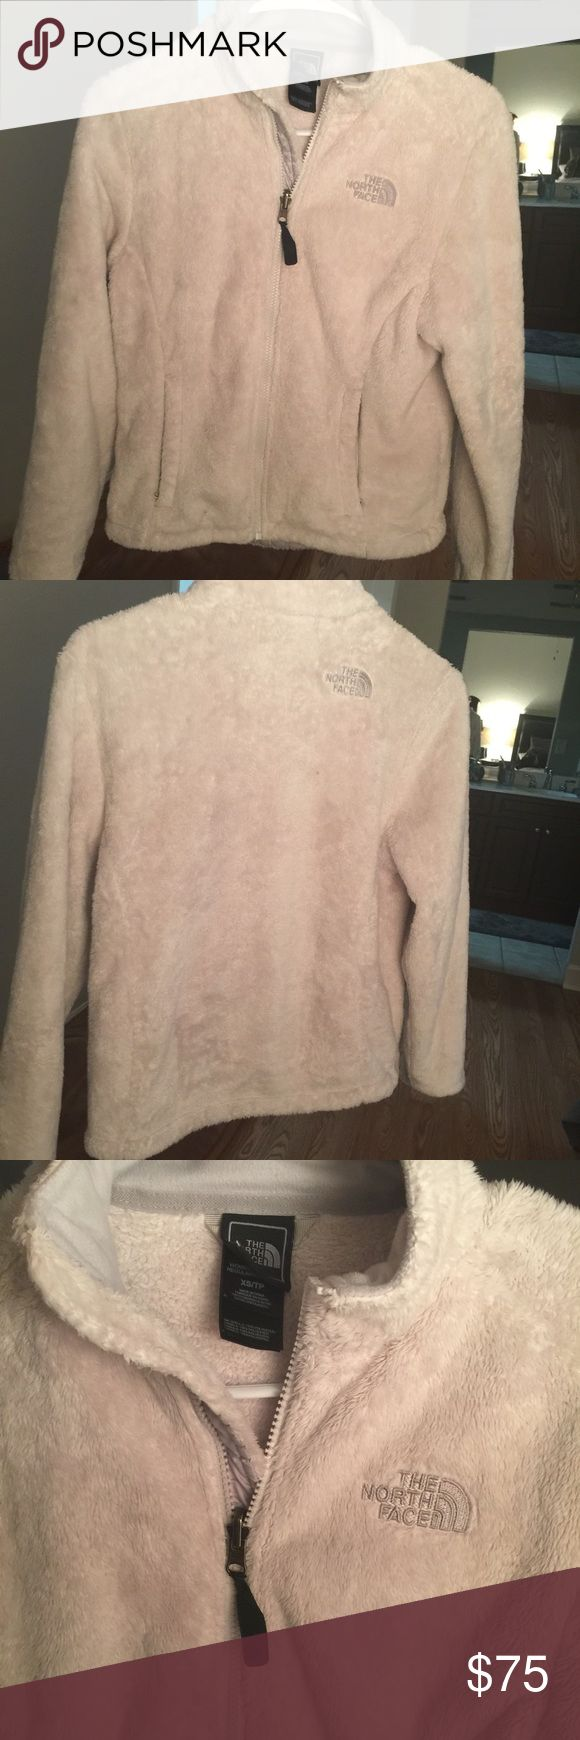 New Off-White North Face furry jacket Only worn twice. In great condition. Off white north face jacket perfect to stay warm North Face Jackets & Coats